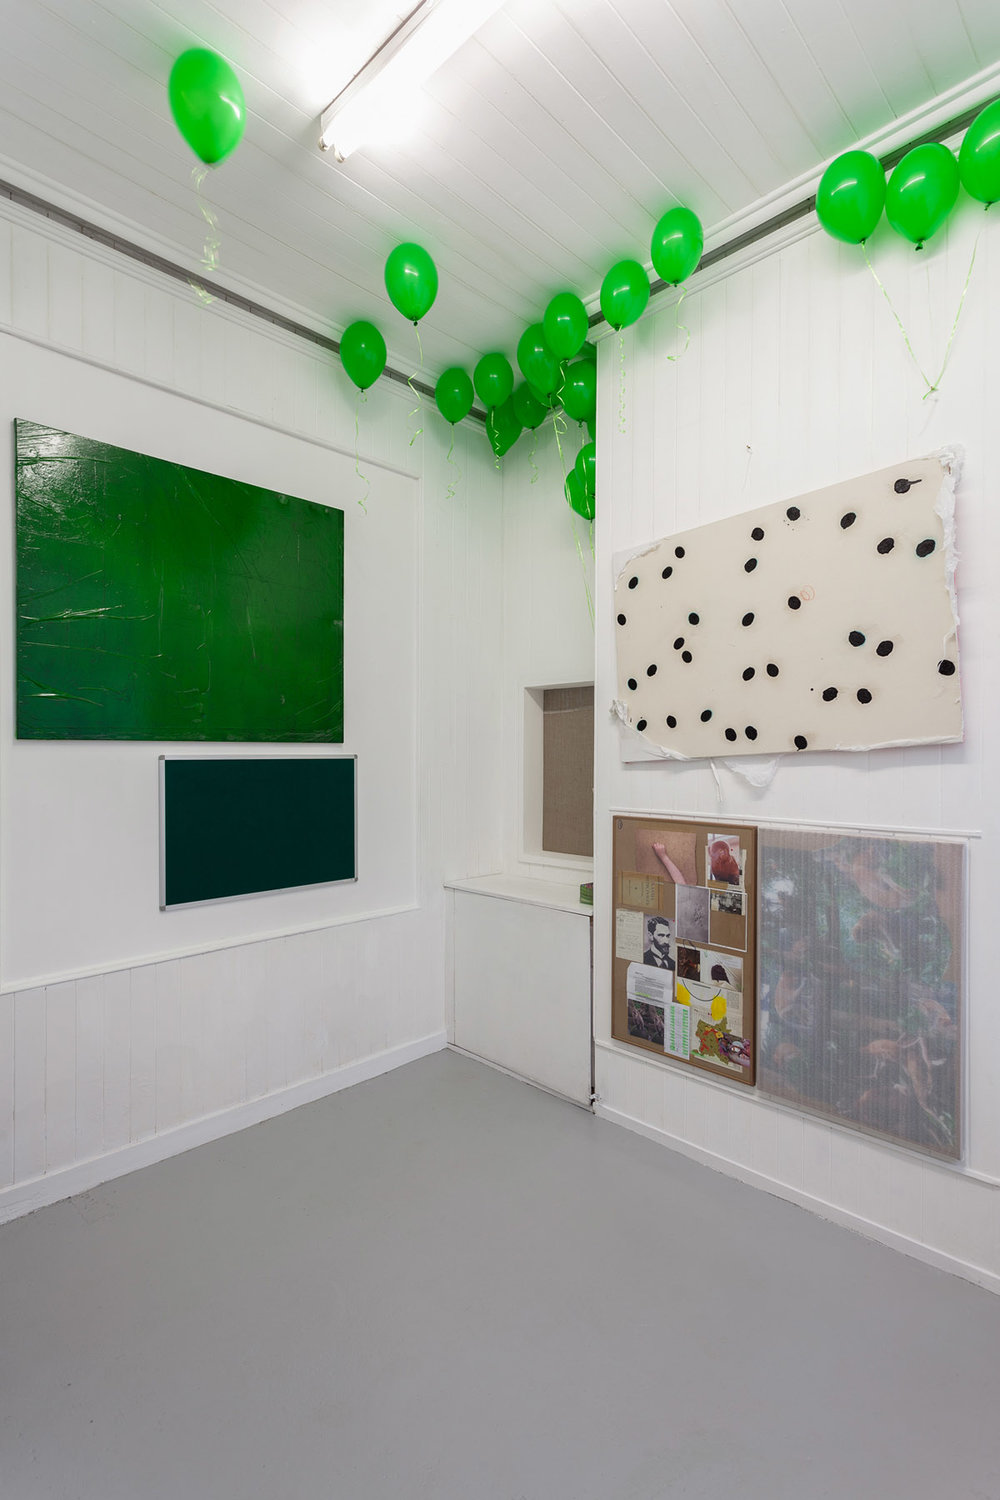 ConorKelly-DaddyintheAlgorithm-Detailfrom-the-Green-Room2.jpg